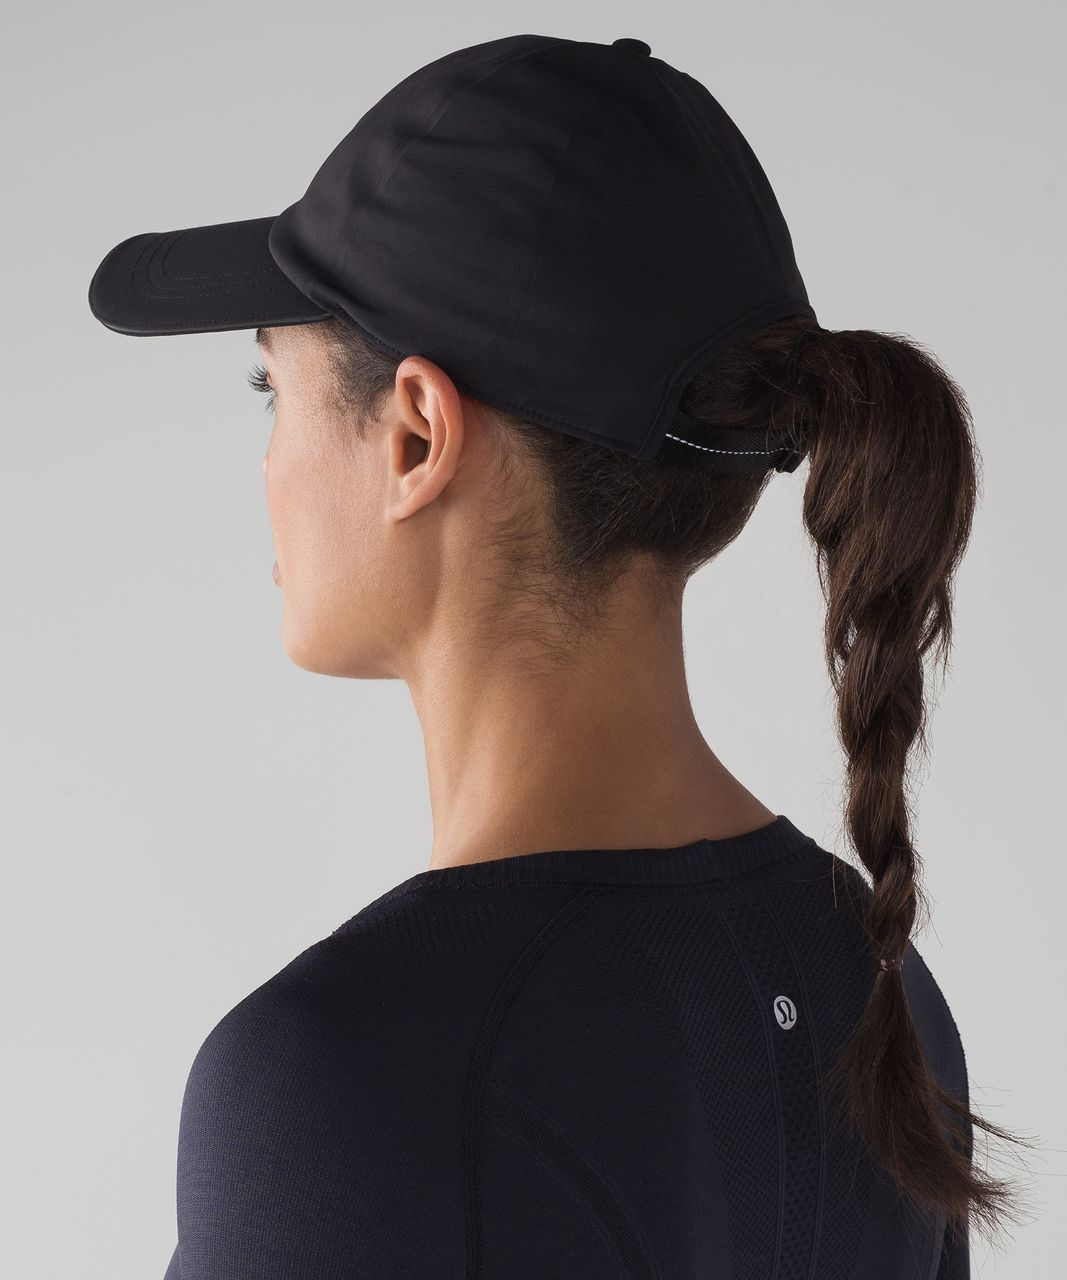 fe4d2c955046d Lululemon Baller Hat Run - Black - lulu fanatics